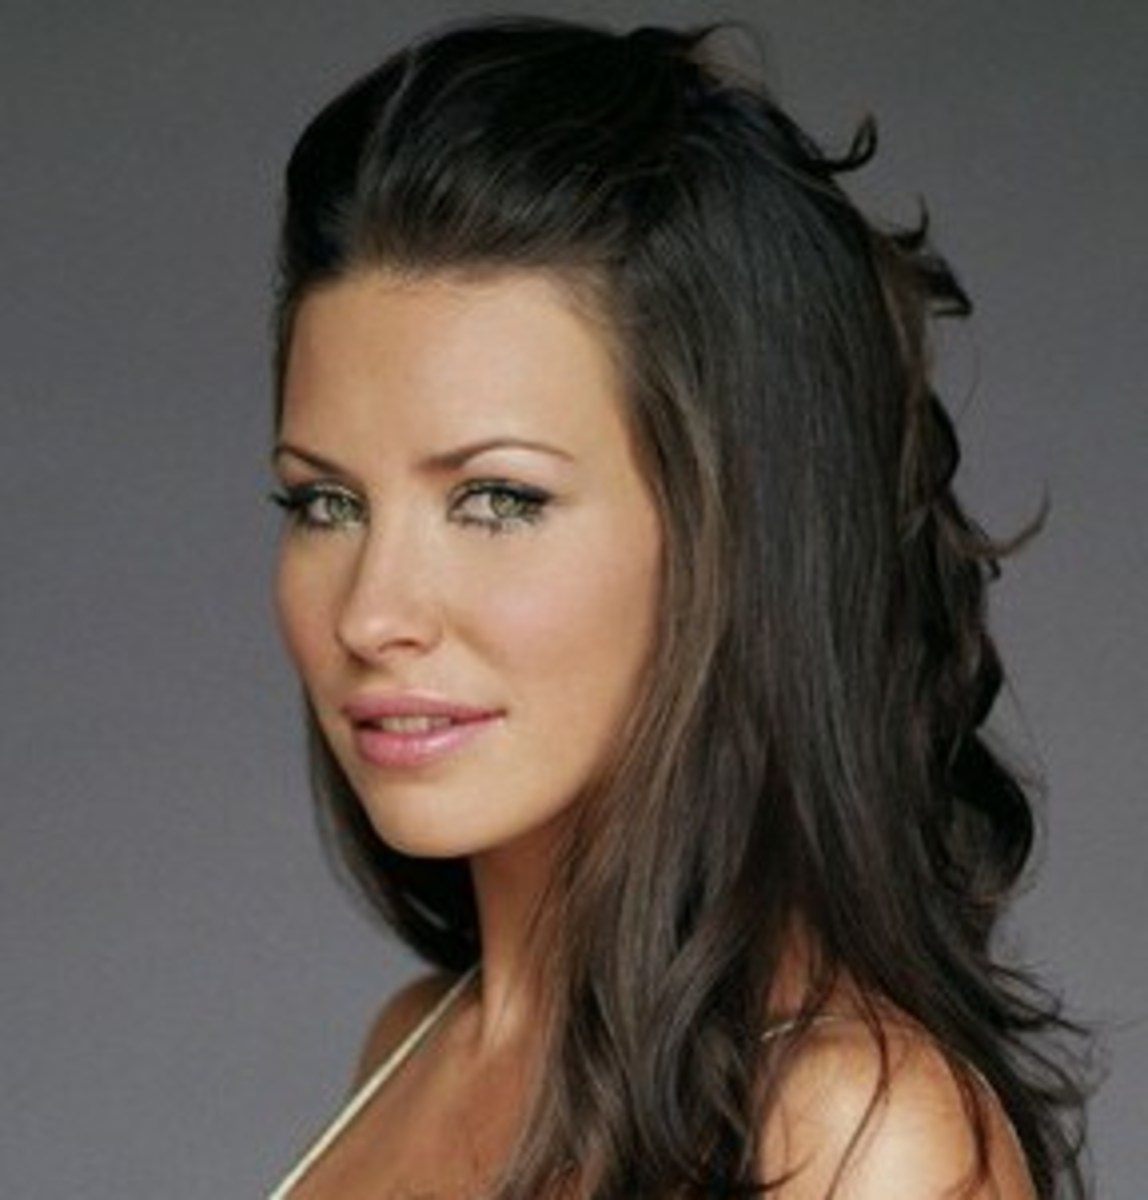 Evangeline Lilly's Makeup